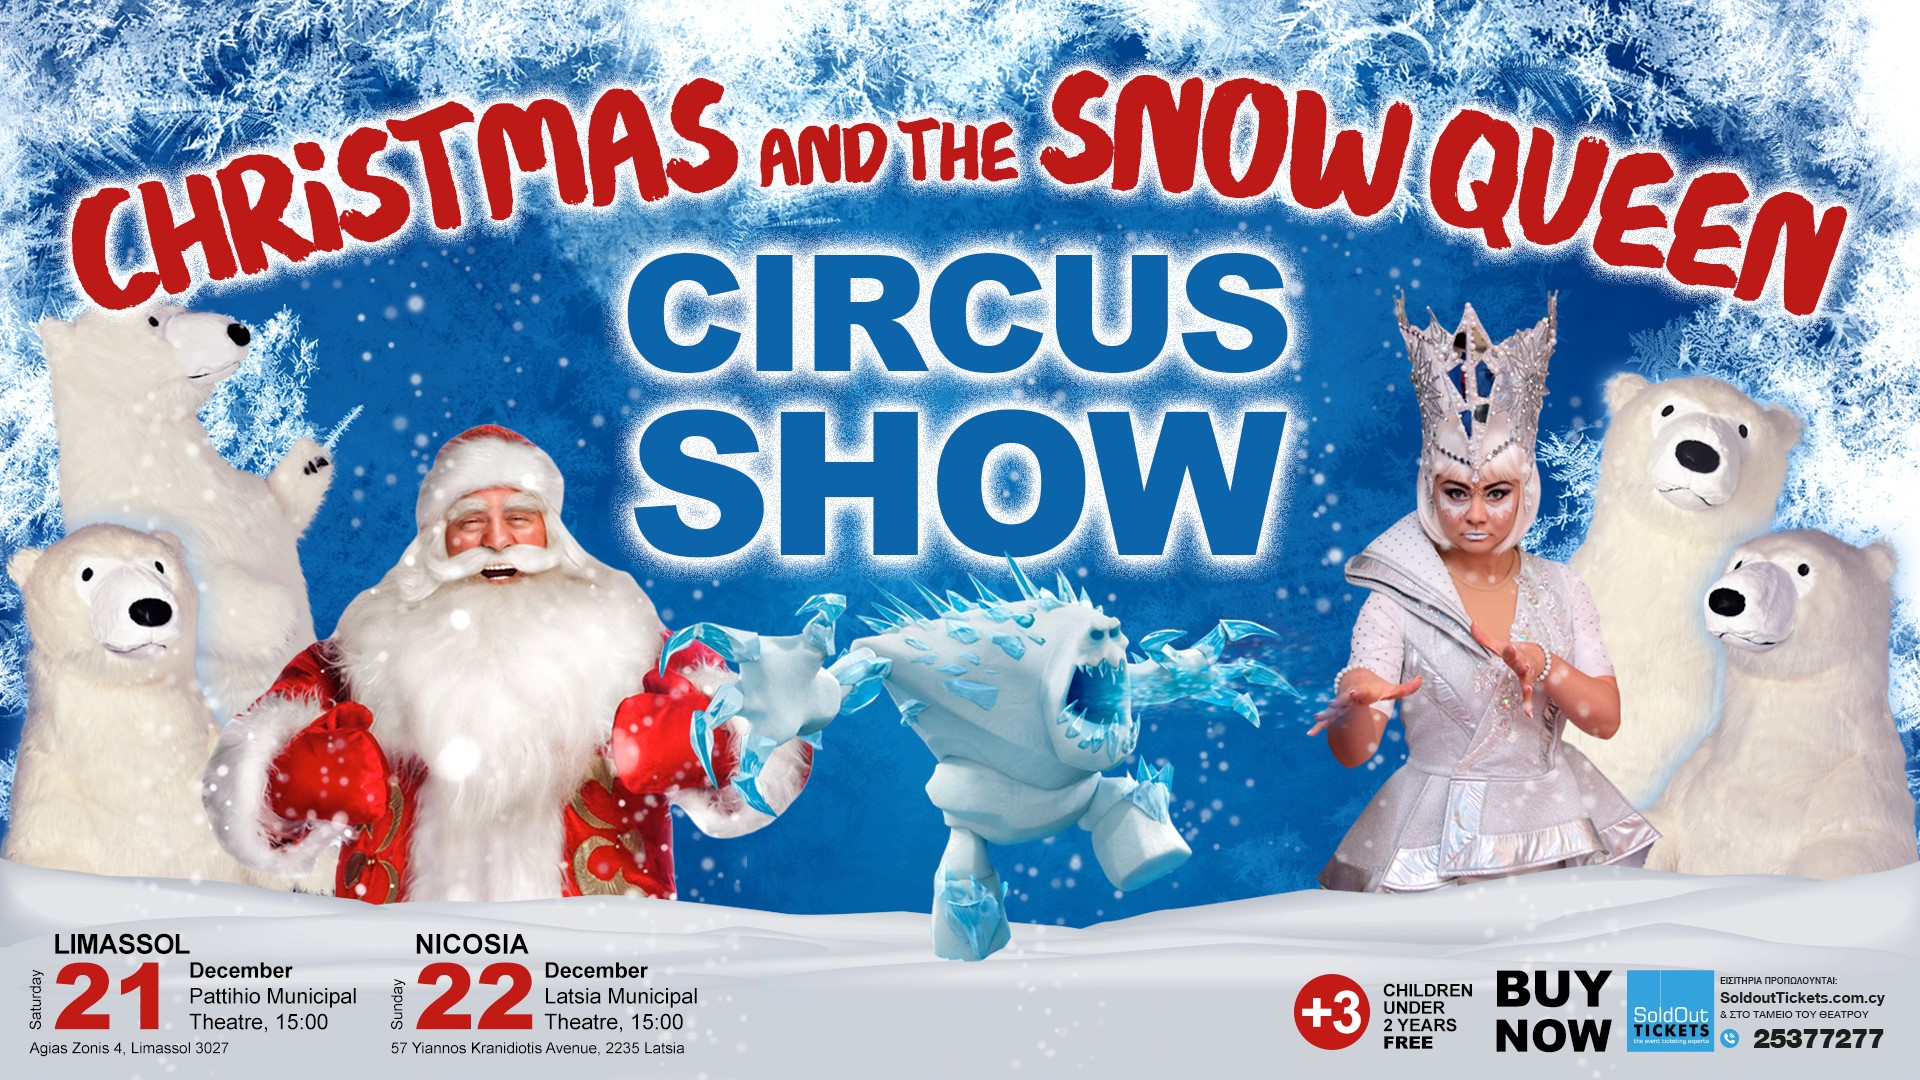 Christmas and the Snow Queen Circus Show - Limassol